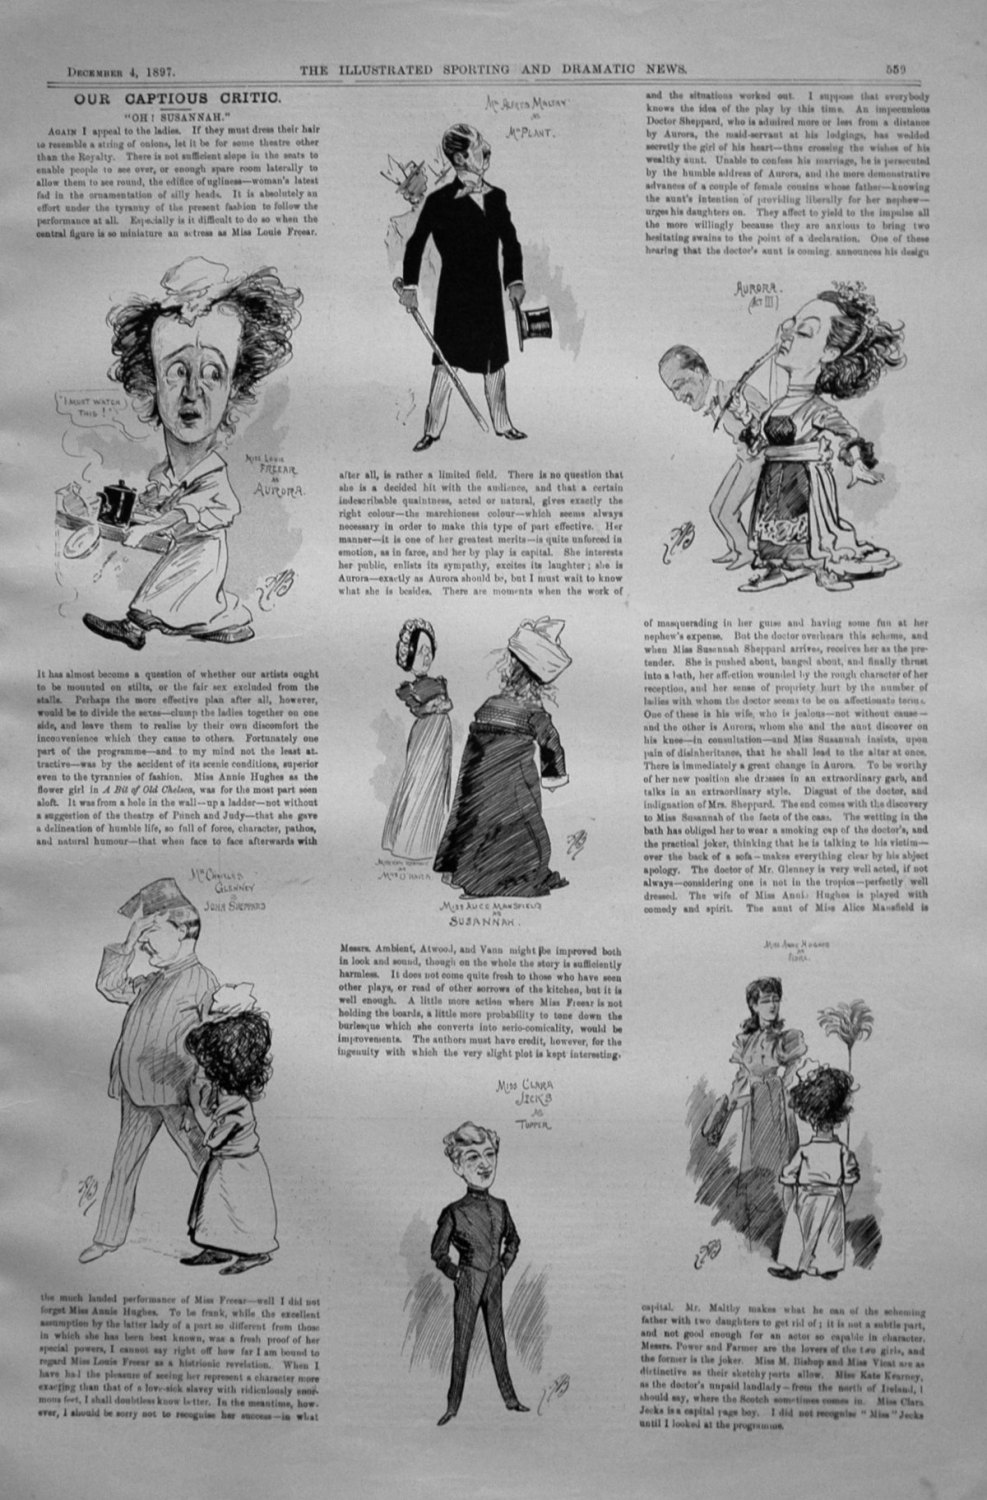 Our Captious Critic, December 4th 1897.